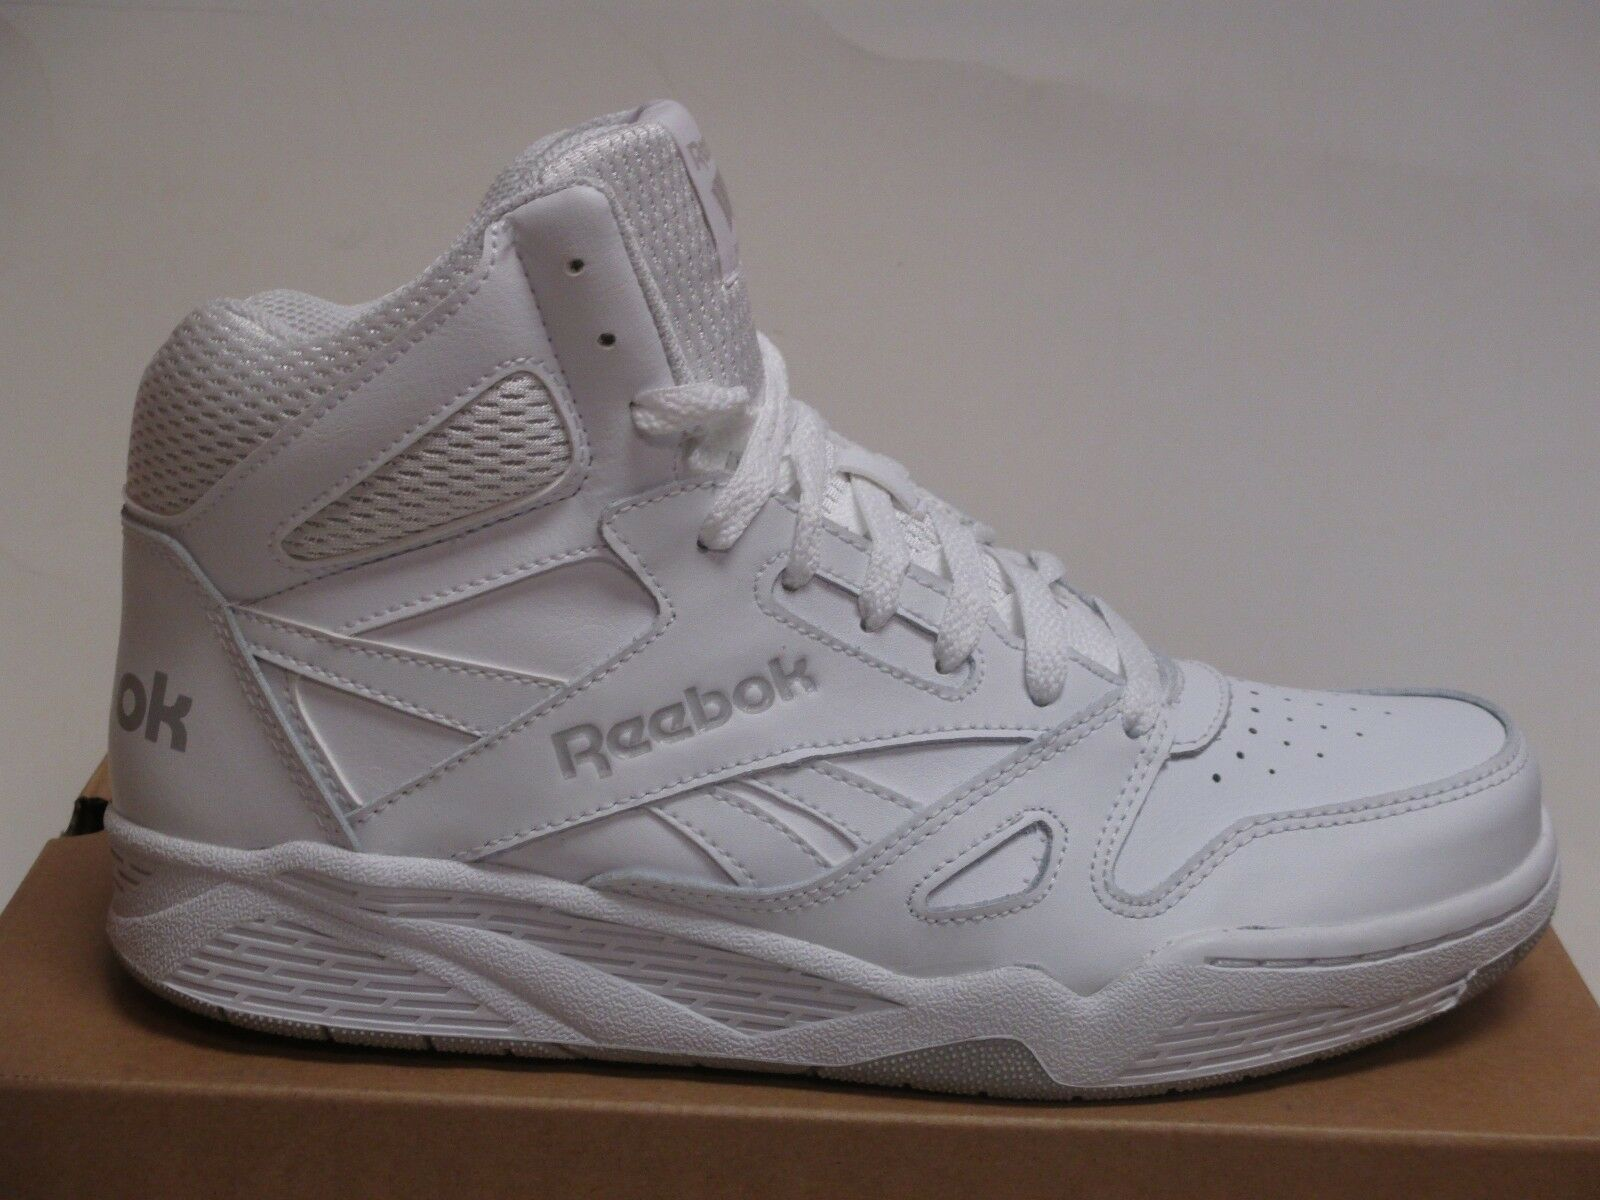 9adf493ddad16a REEBOK BB4500 (WHITE) MENS BASKETBALL SNEAKERS (WIDE WIDTH 4E)